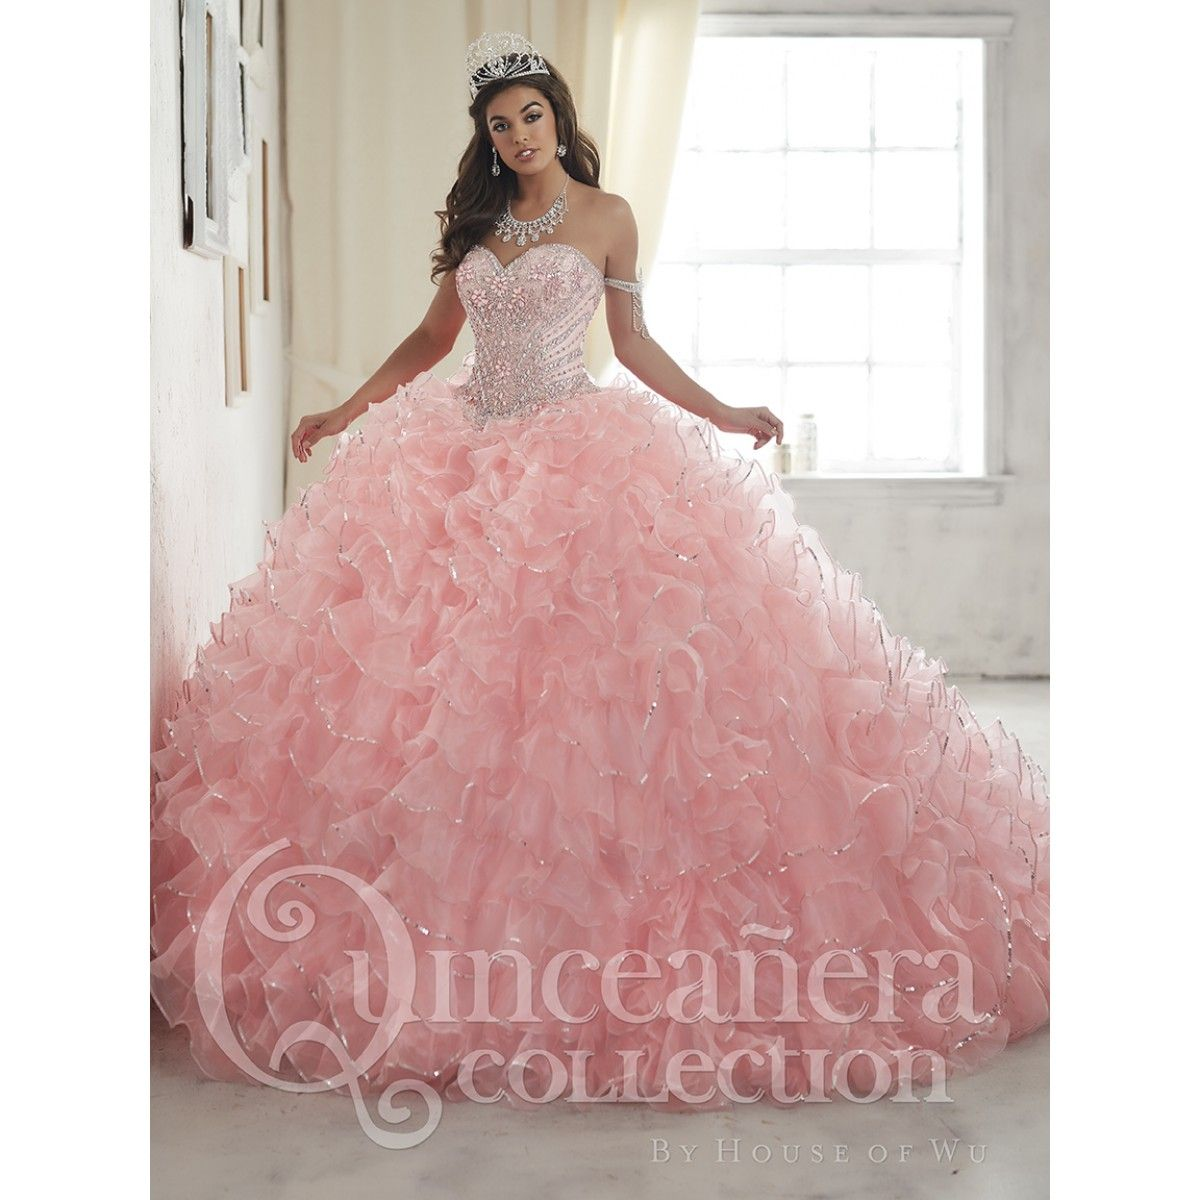 New | Style 26845 - Quinceanera Collection | 2017 quincenera line ...